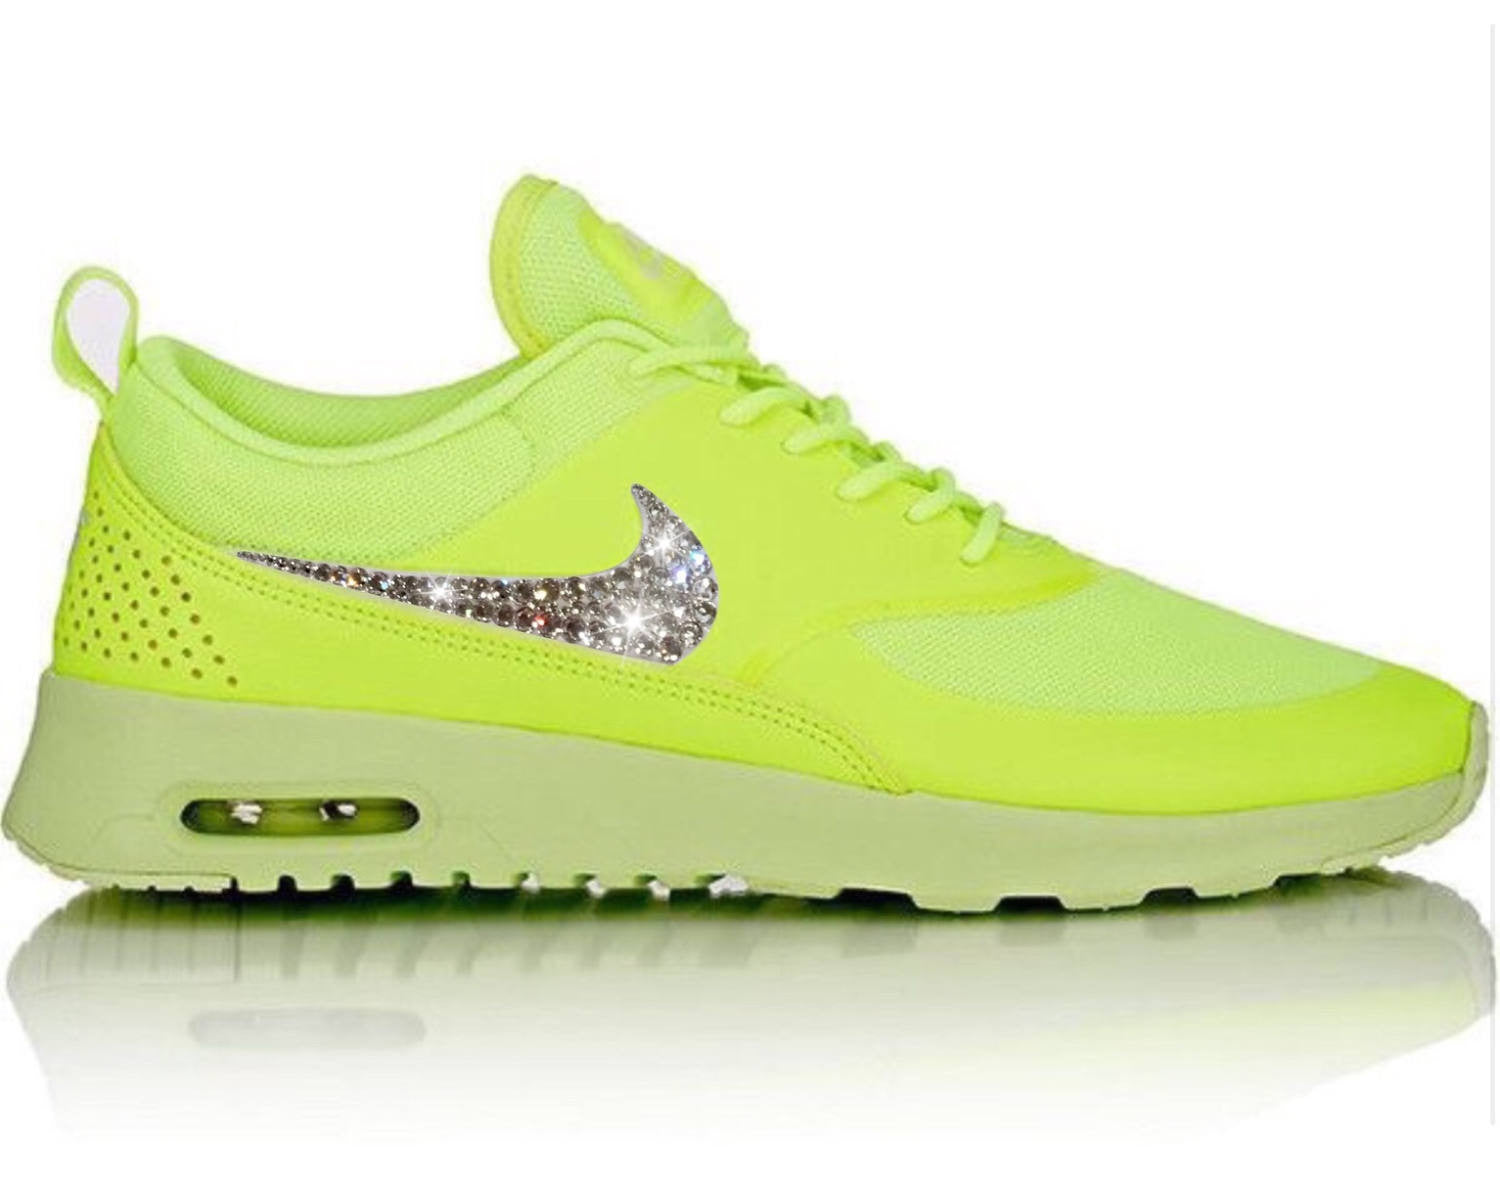 6a5451ff4a5a Bling Nike Air Max Thea Shoes in Neon Yellow   Volt with Swarovski Crystal Bedazzled  Swooshes ...